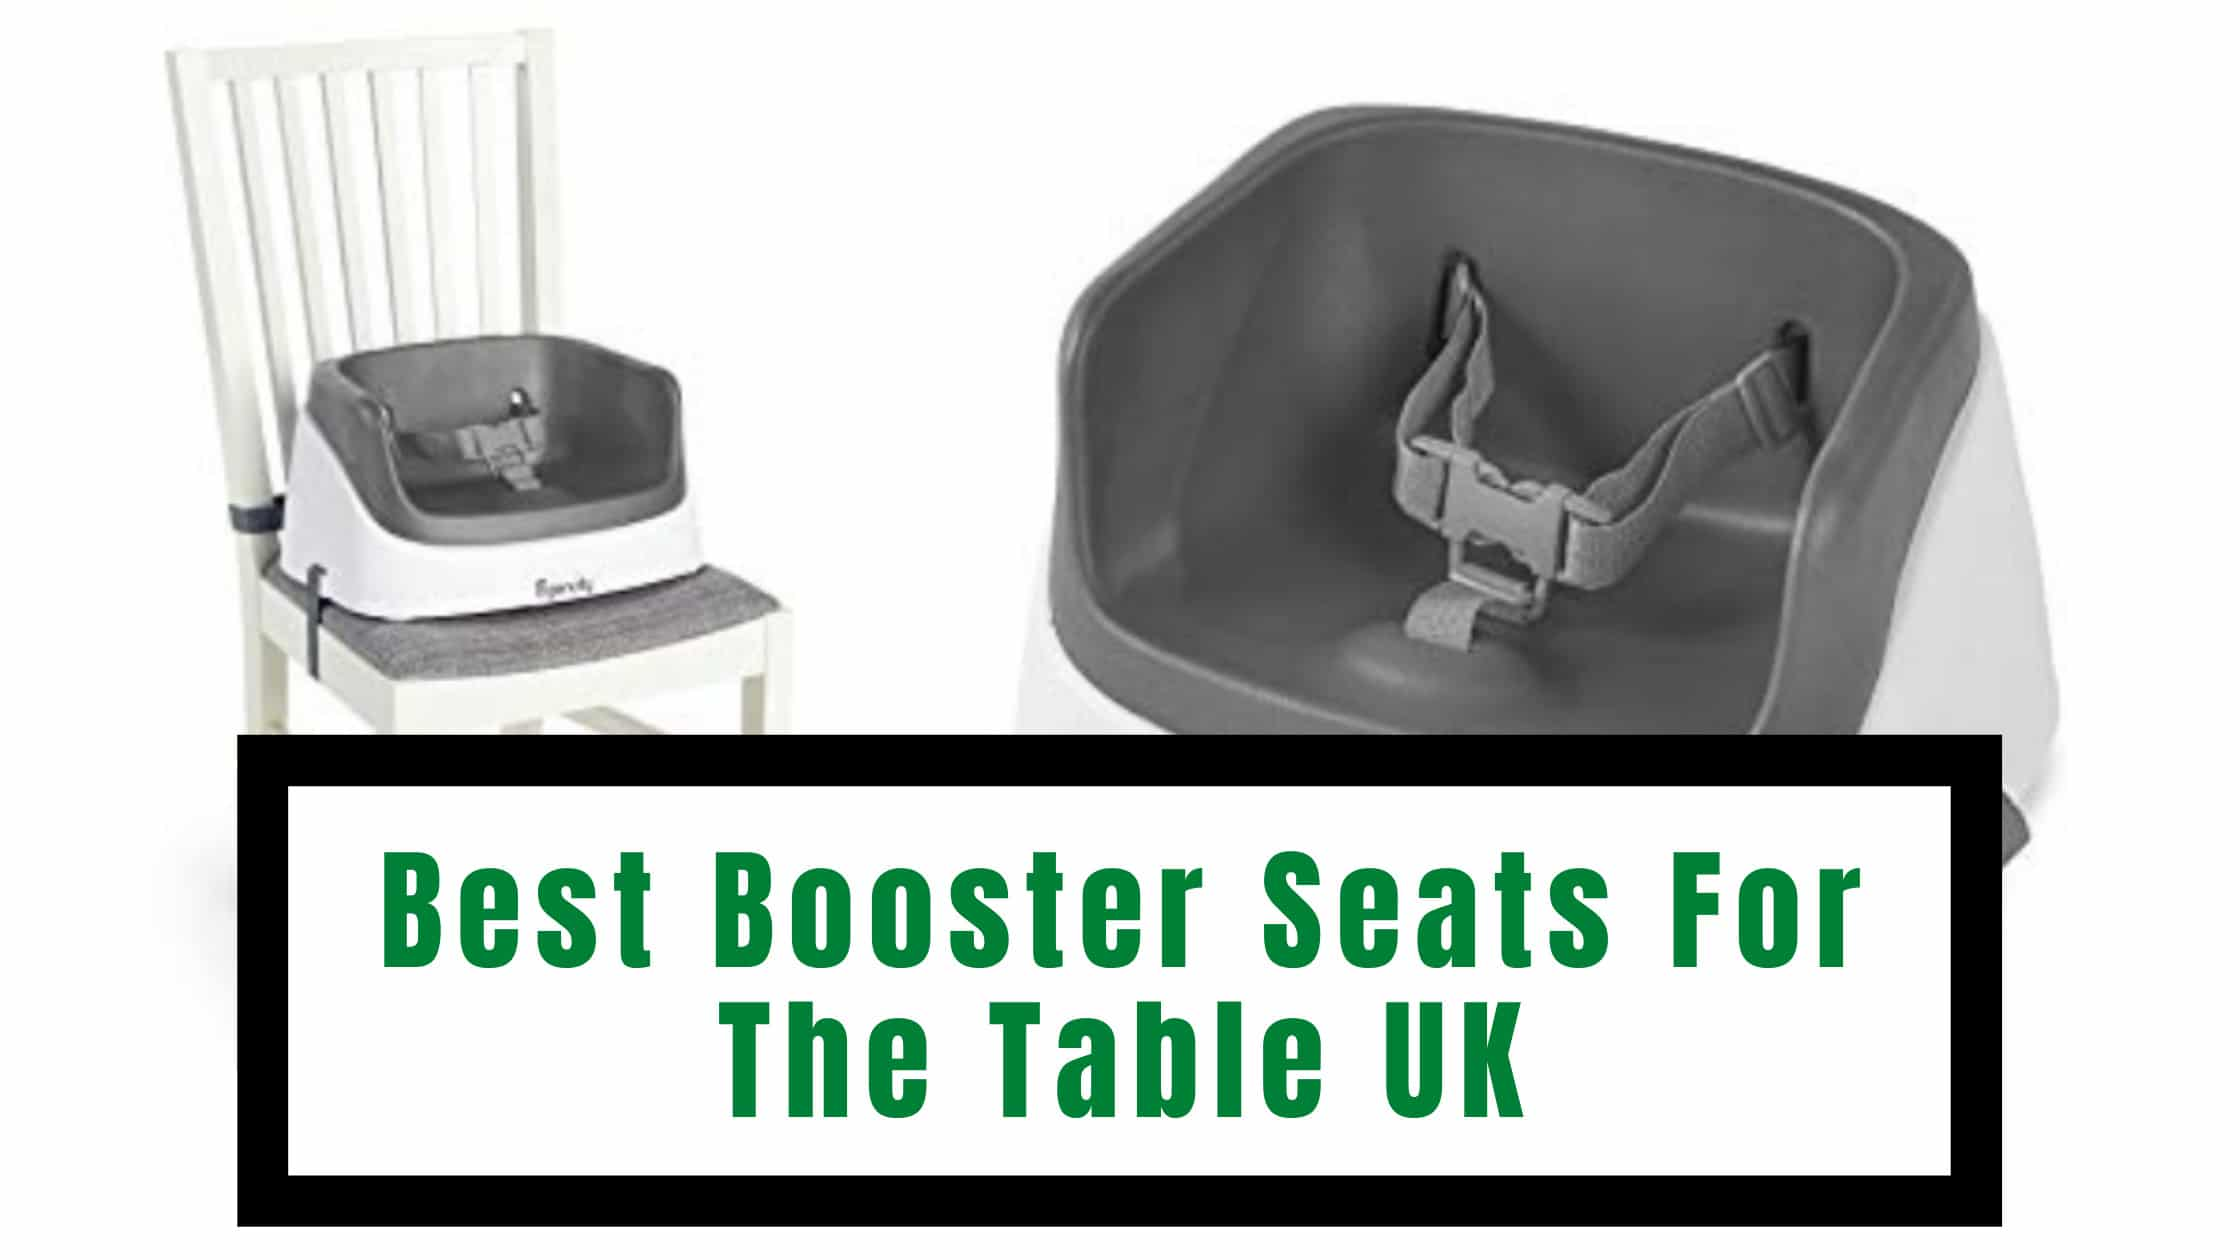 Best Booster Seats For The Table UK